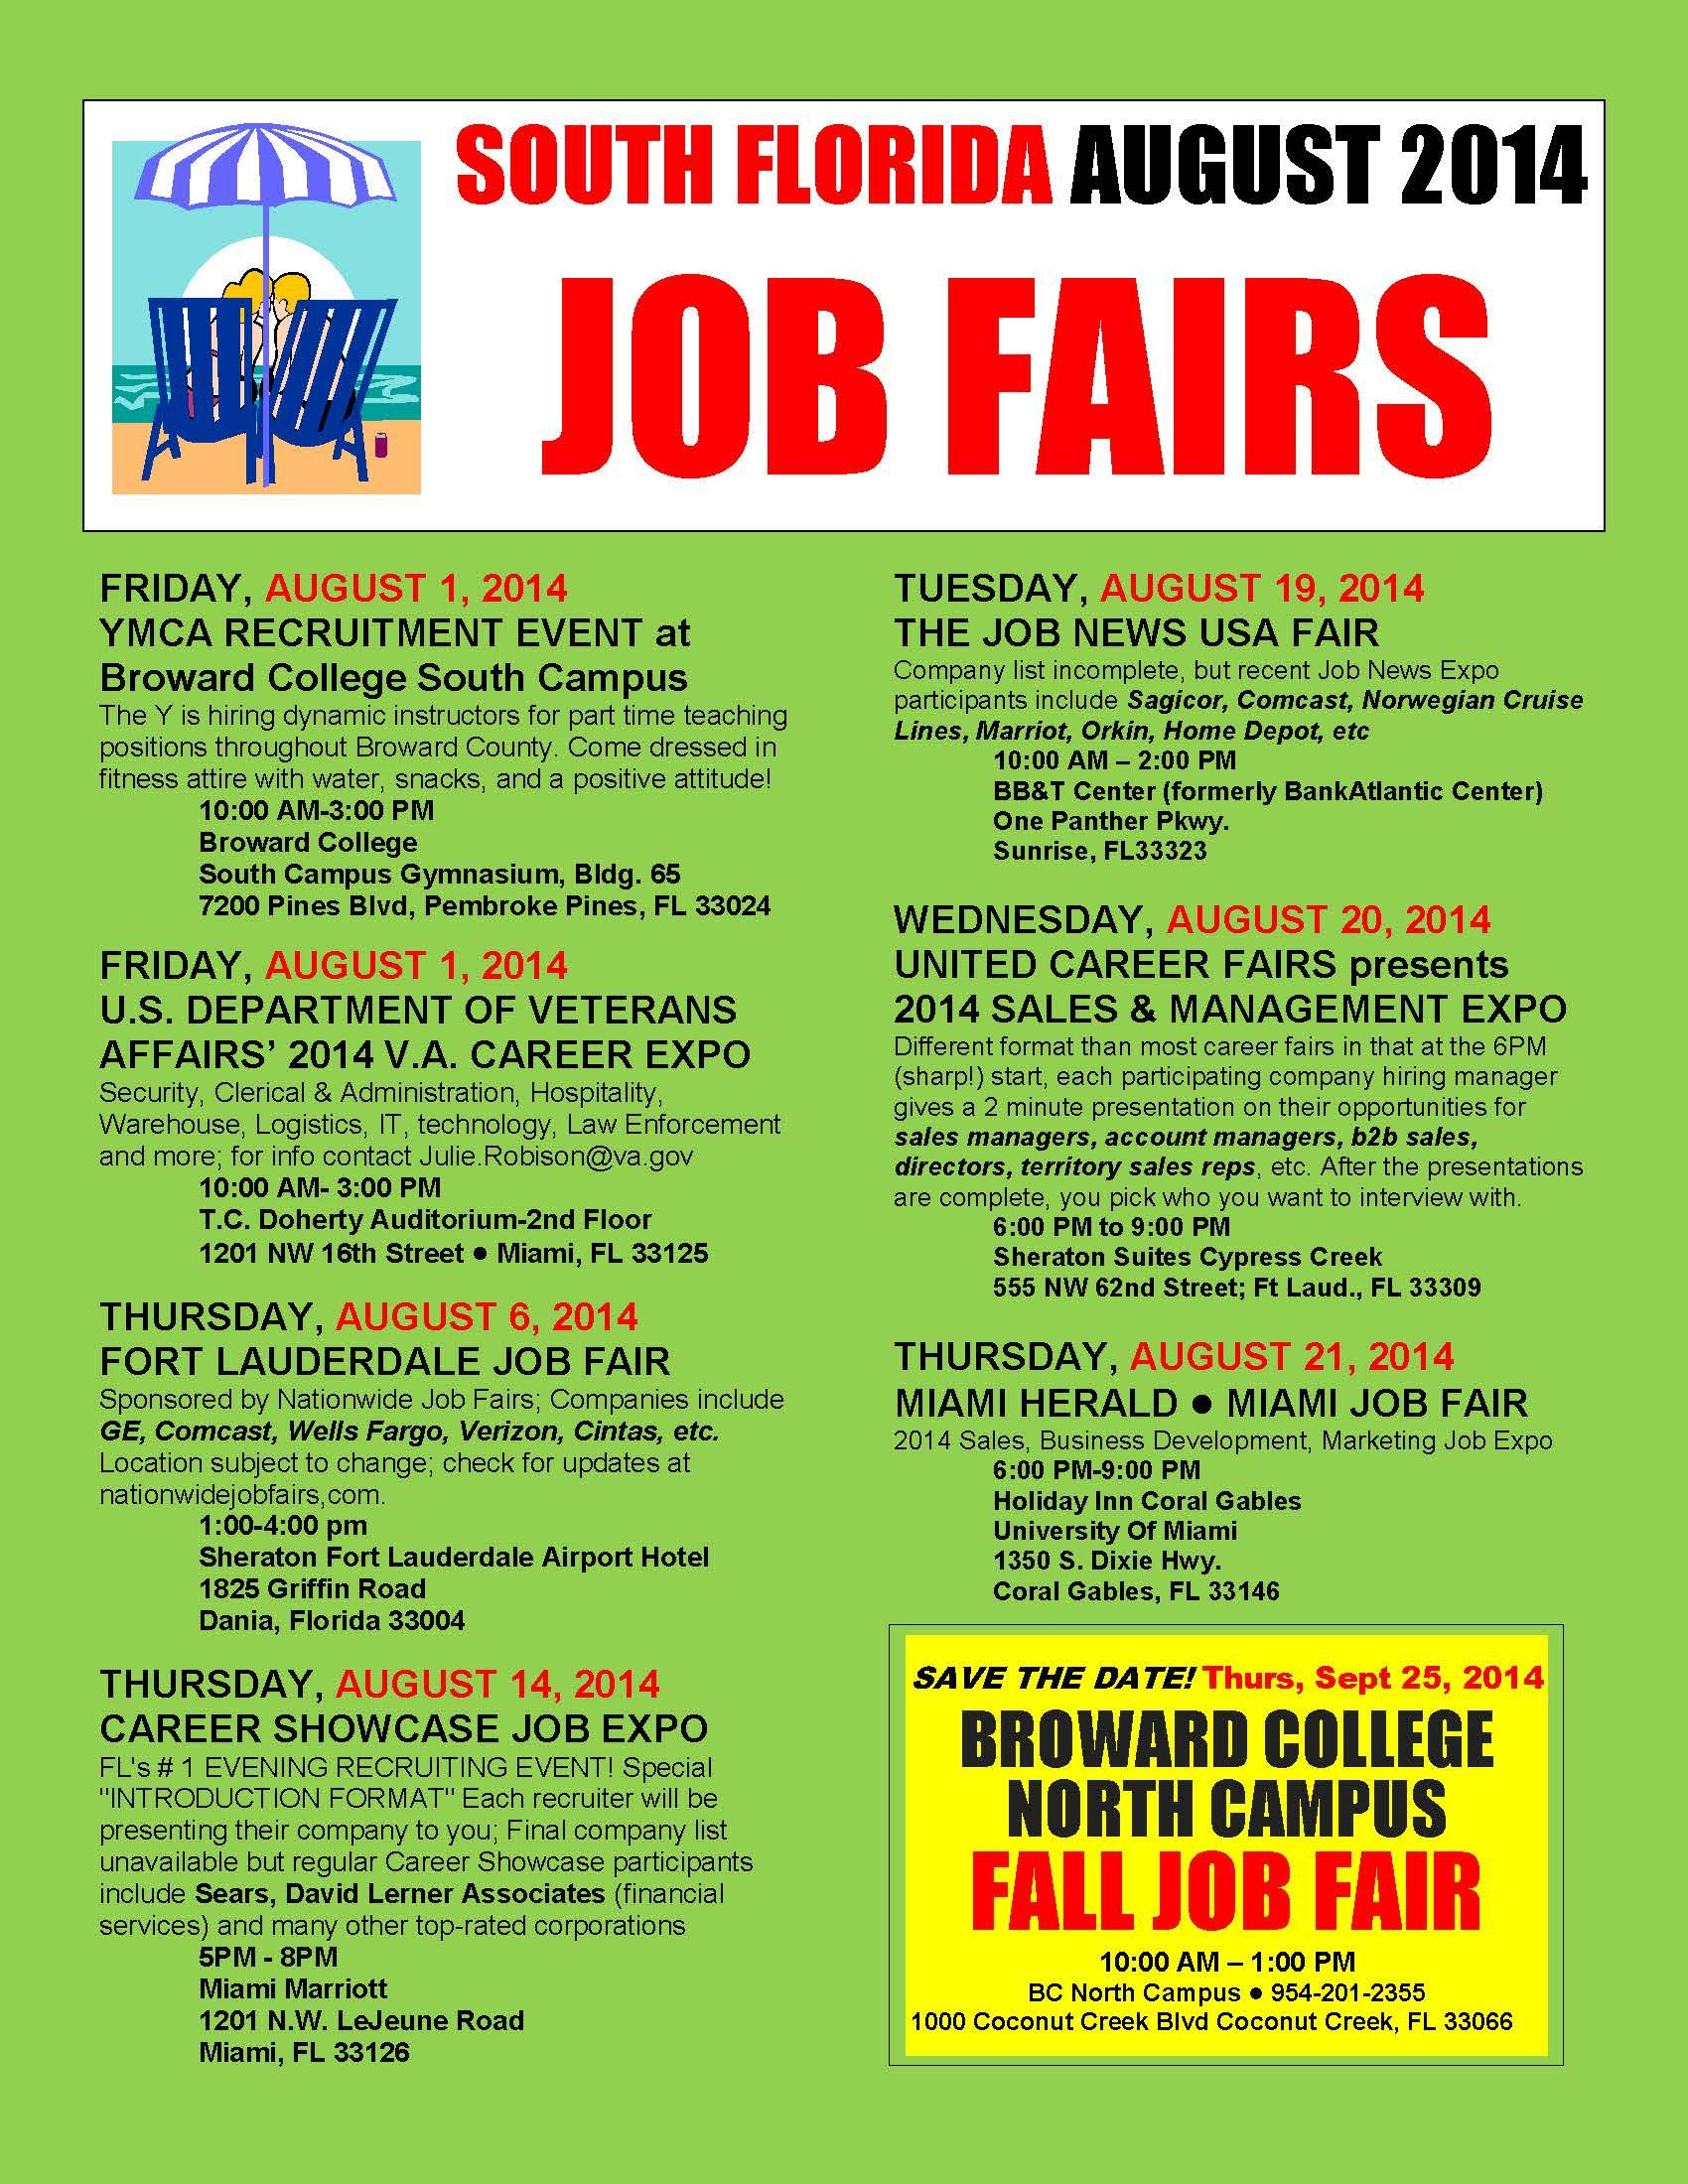 The Broward College Career Center-South Campus will be